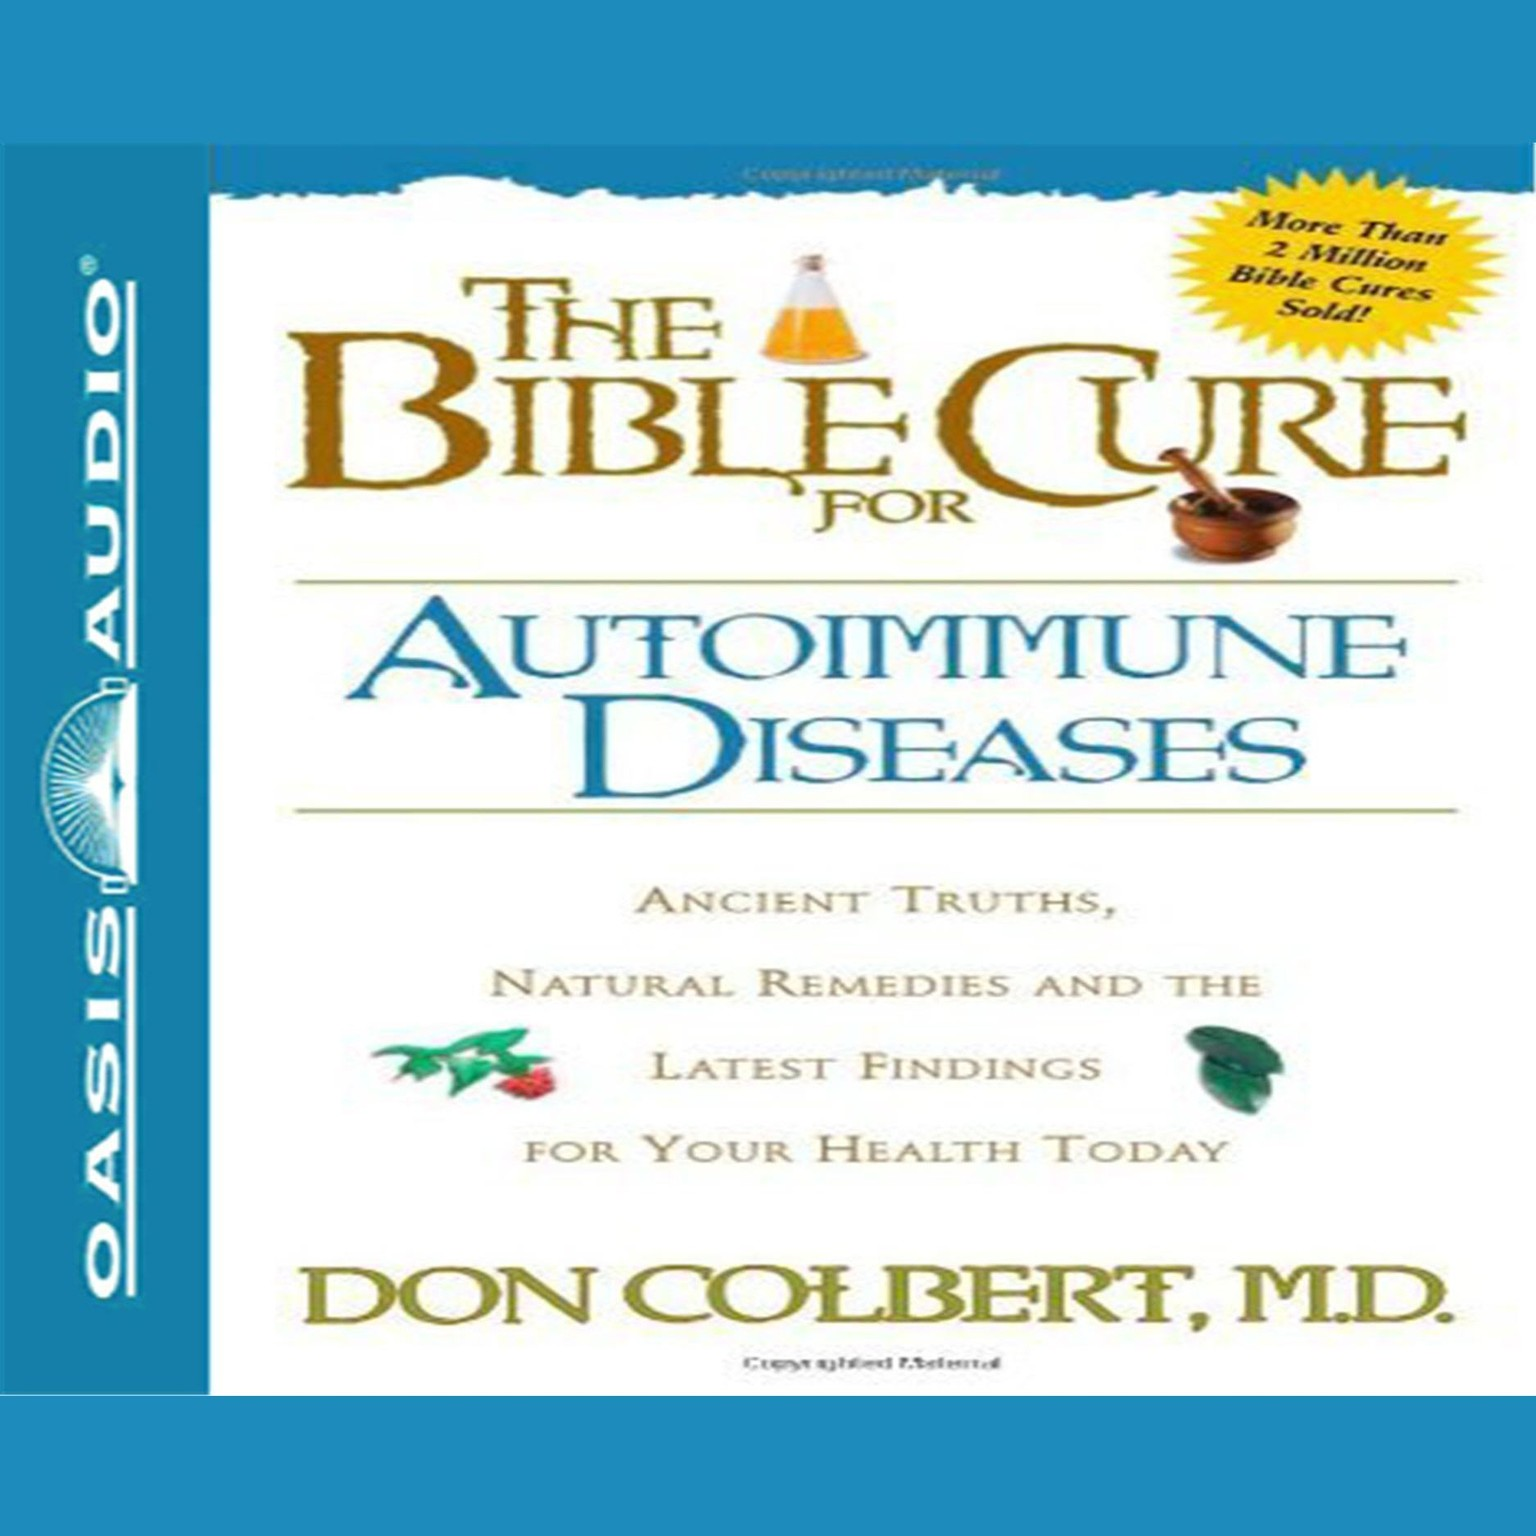 Printable The Bible Cure for Autoimmune Diseases: Ancient Truths, Natural Remedies and the Latest Findings for Your Health Today Audiobook Cover Art